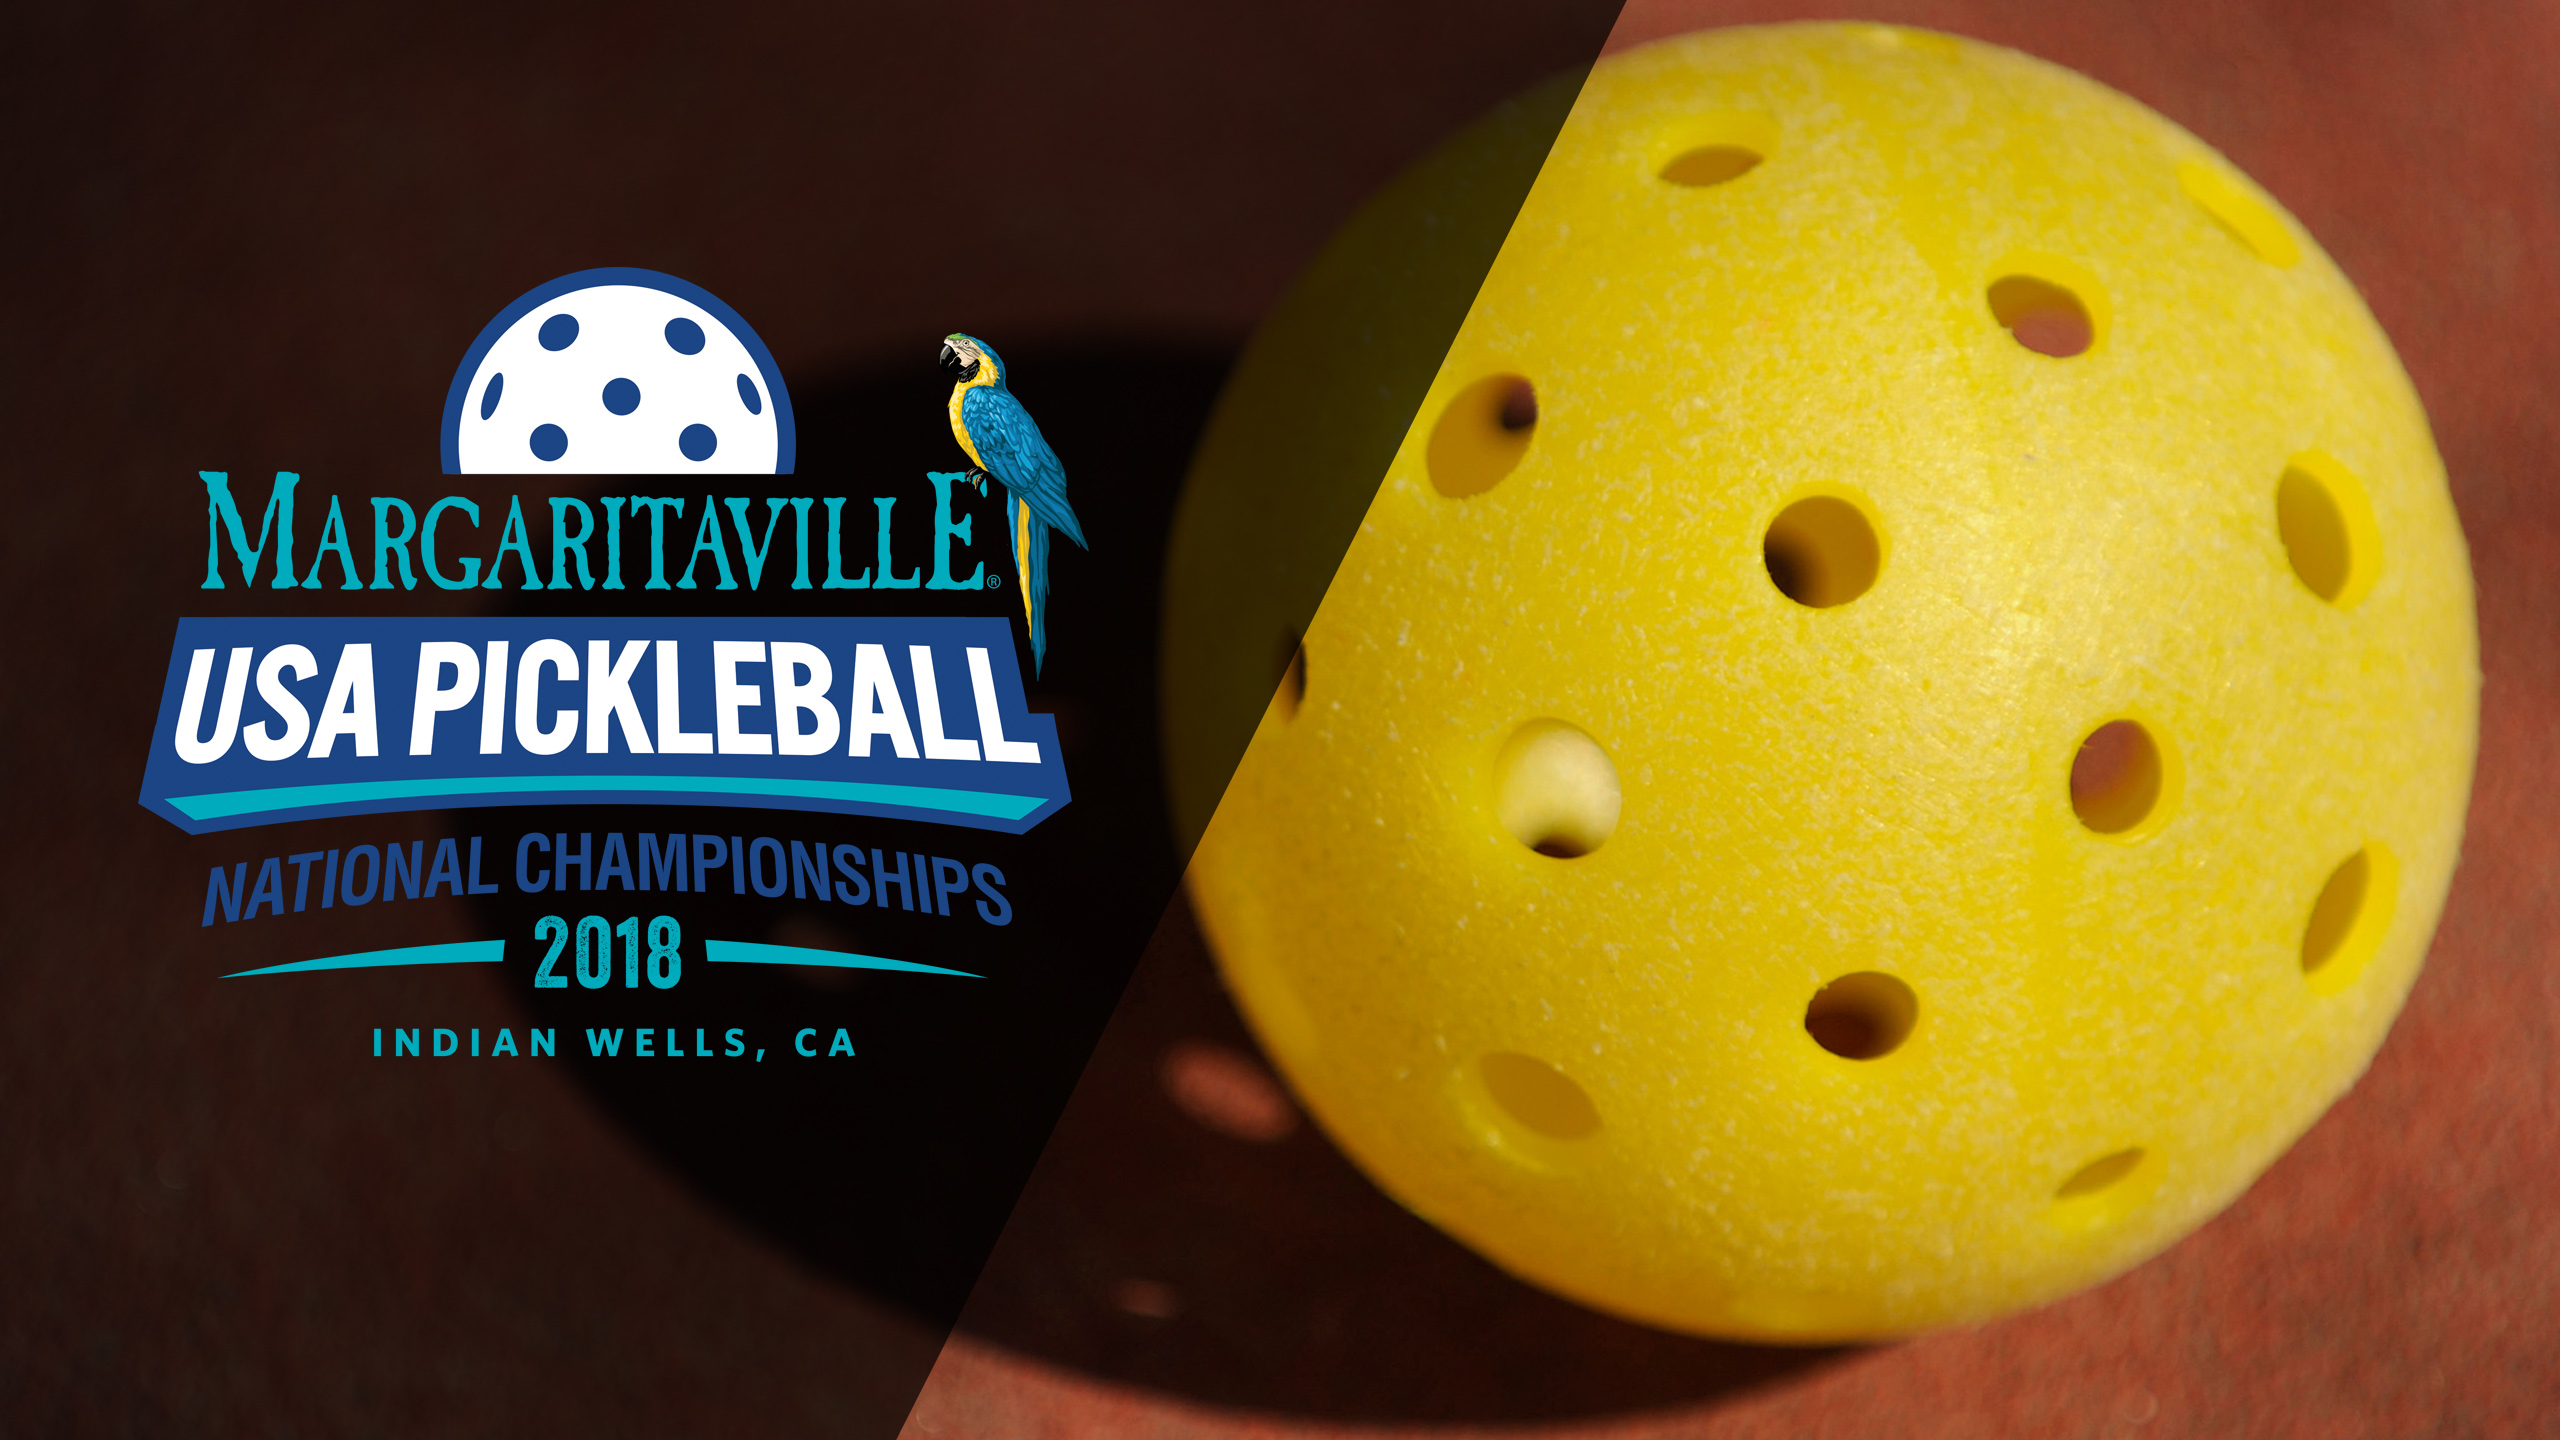 2018 Margaritaville USA Pickleball National Championships